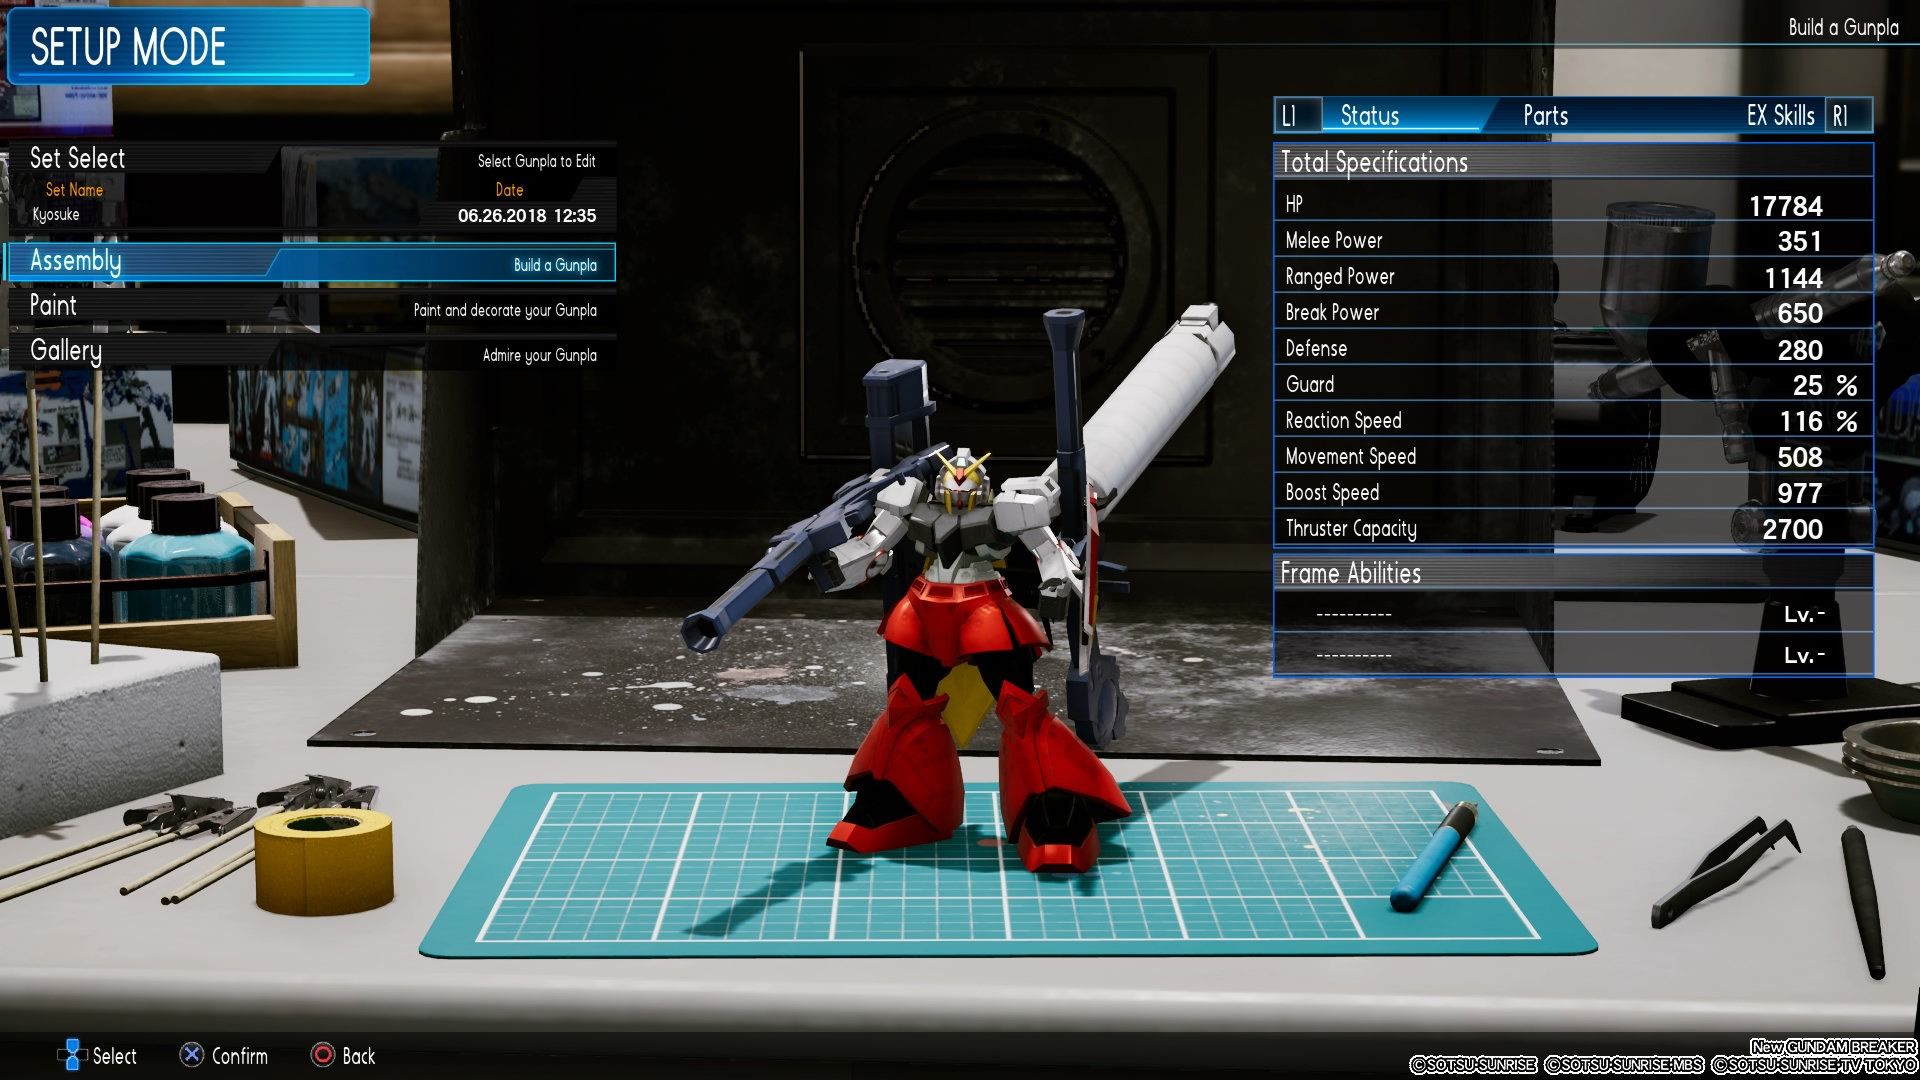 Gundam Models T Bandai Sd Bb 364 Oo Qant Qanta Quanta The Games Main Campaign Is Also Focused On Gunpla Building And Battling Character Kyosuke Who Can Be Renamed At Beginning Of Story